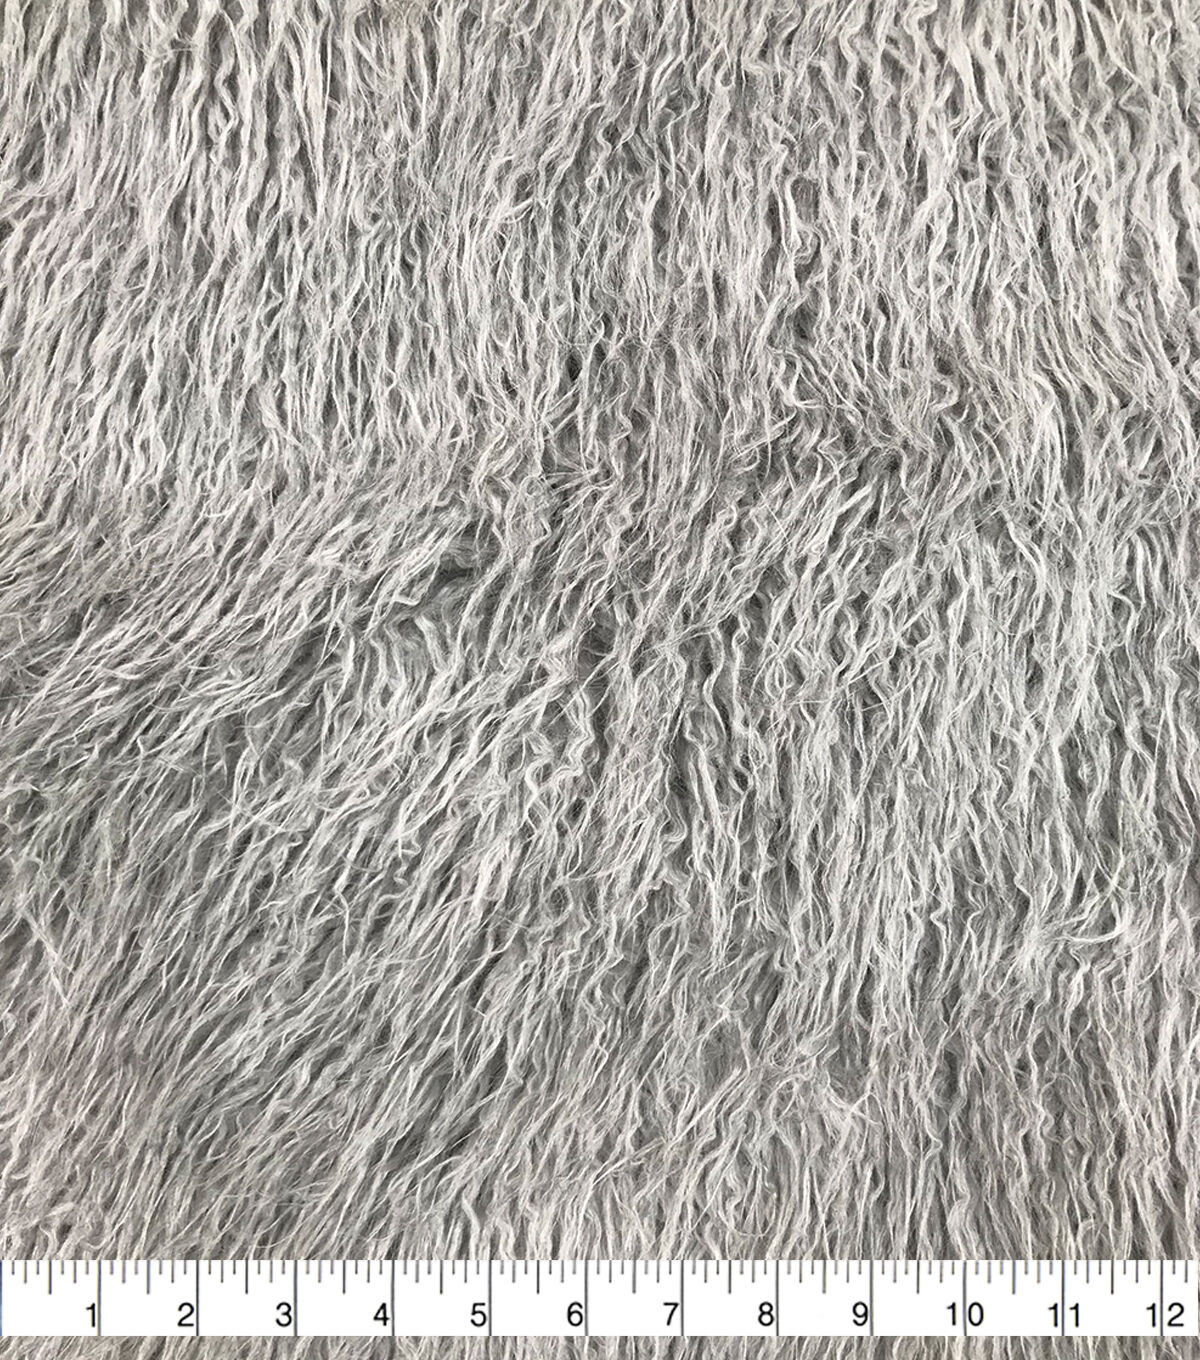 Super Luxury CURLY FRILLS Faux Fur Fabric Material TAUPE